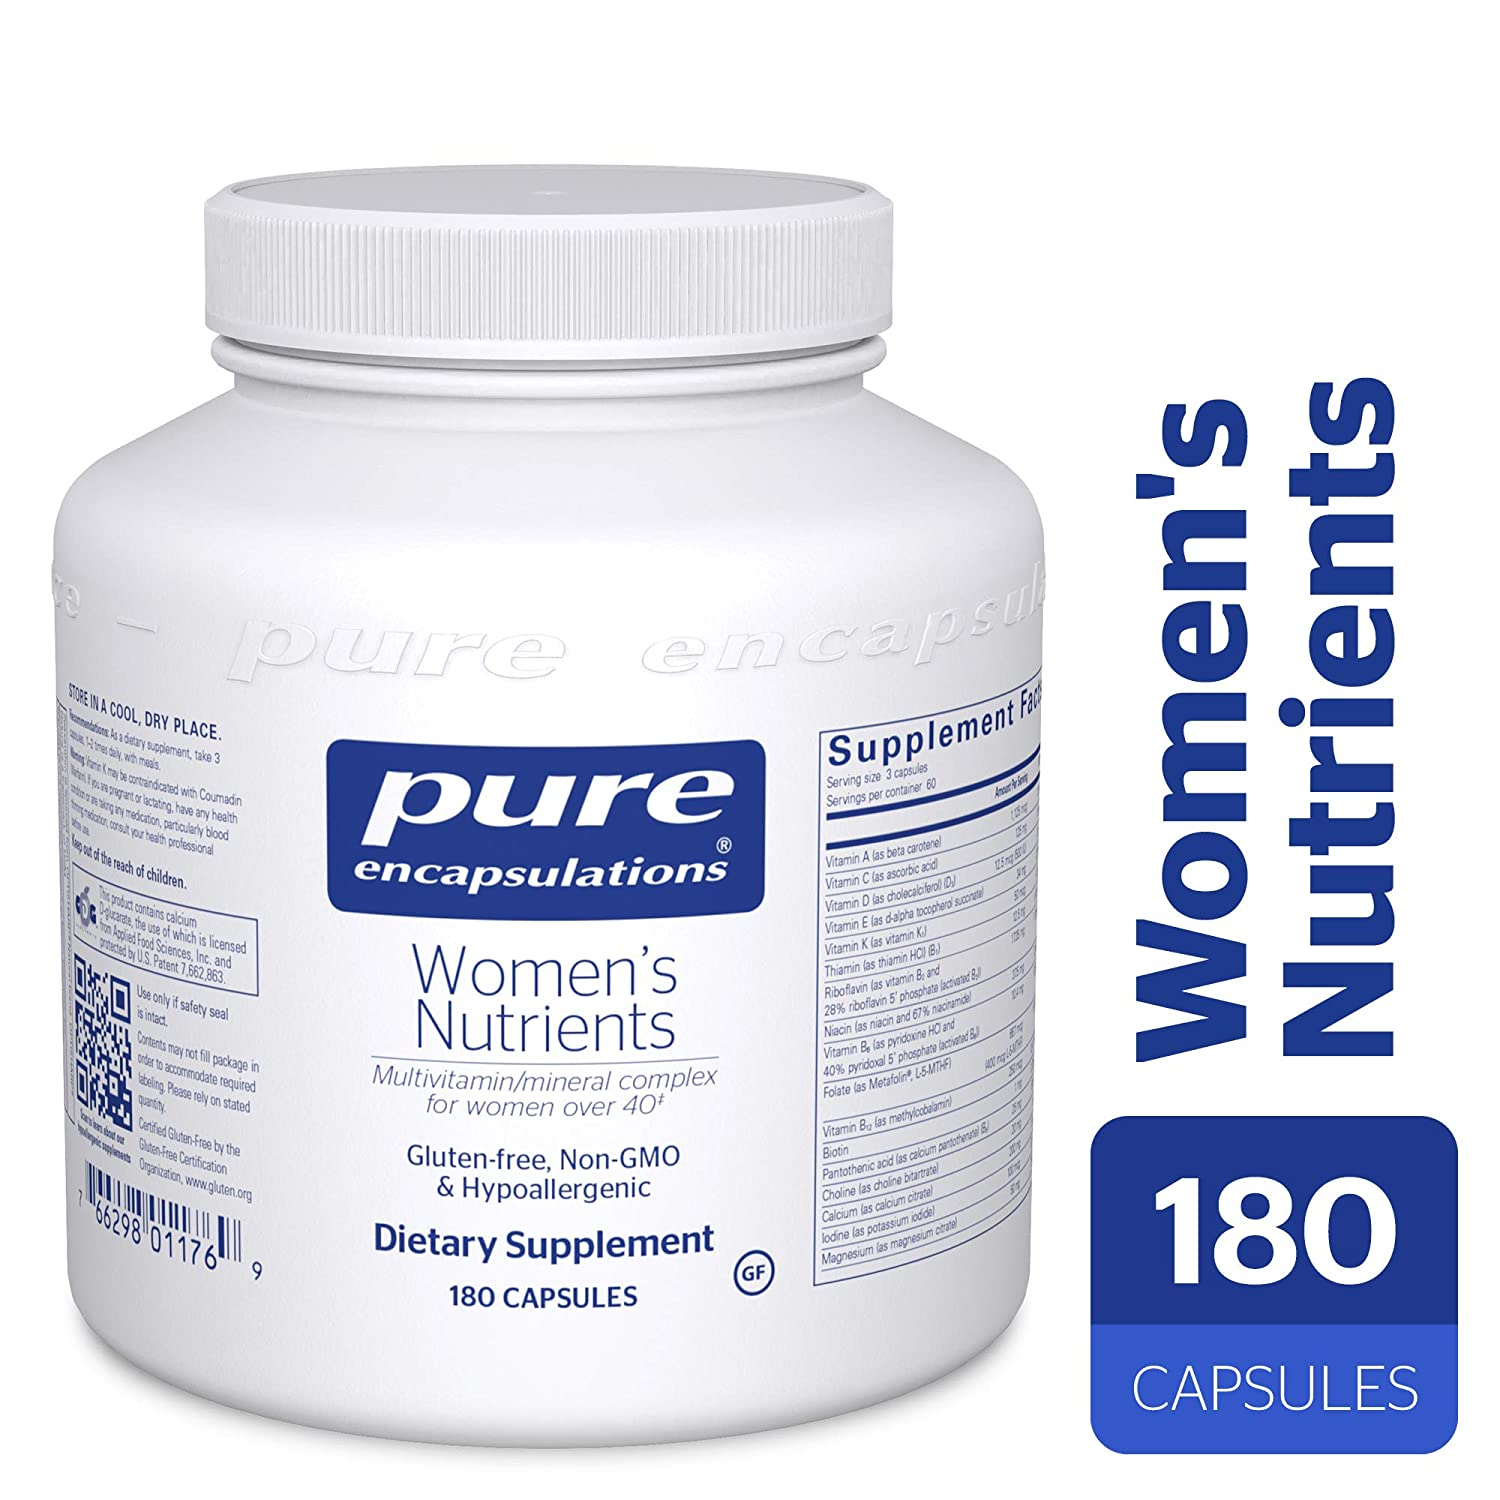 Pure Encapsulations – Women s Nutrients – Hypoallergenic Multivitamin Mineral Complex for Women Over 40*- 180 Capsules